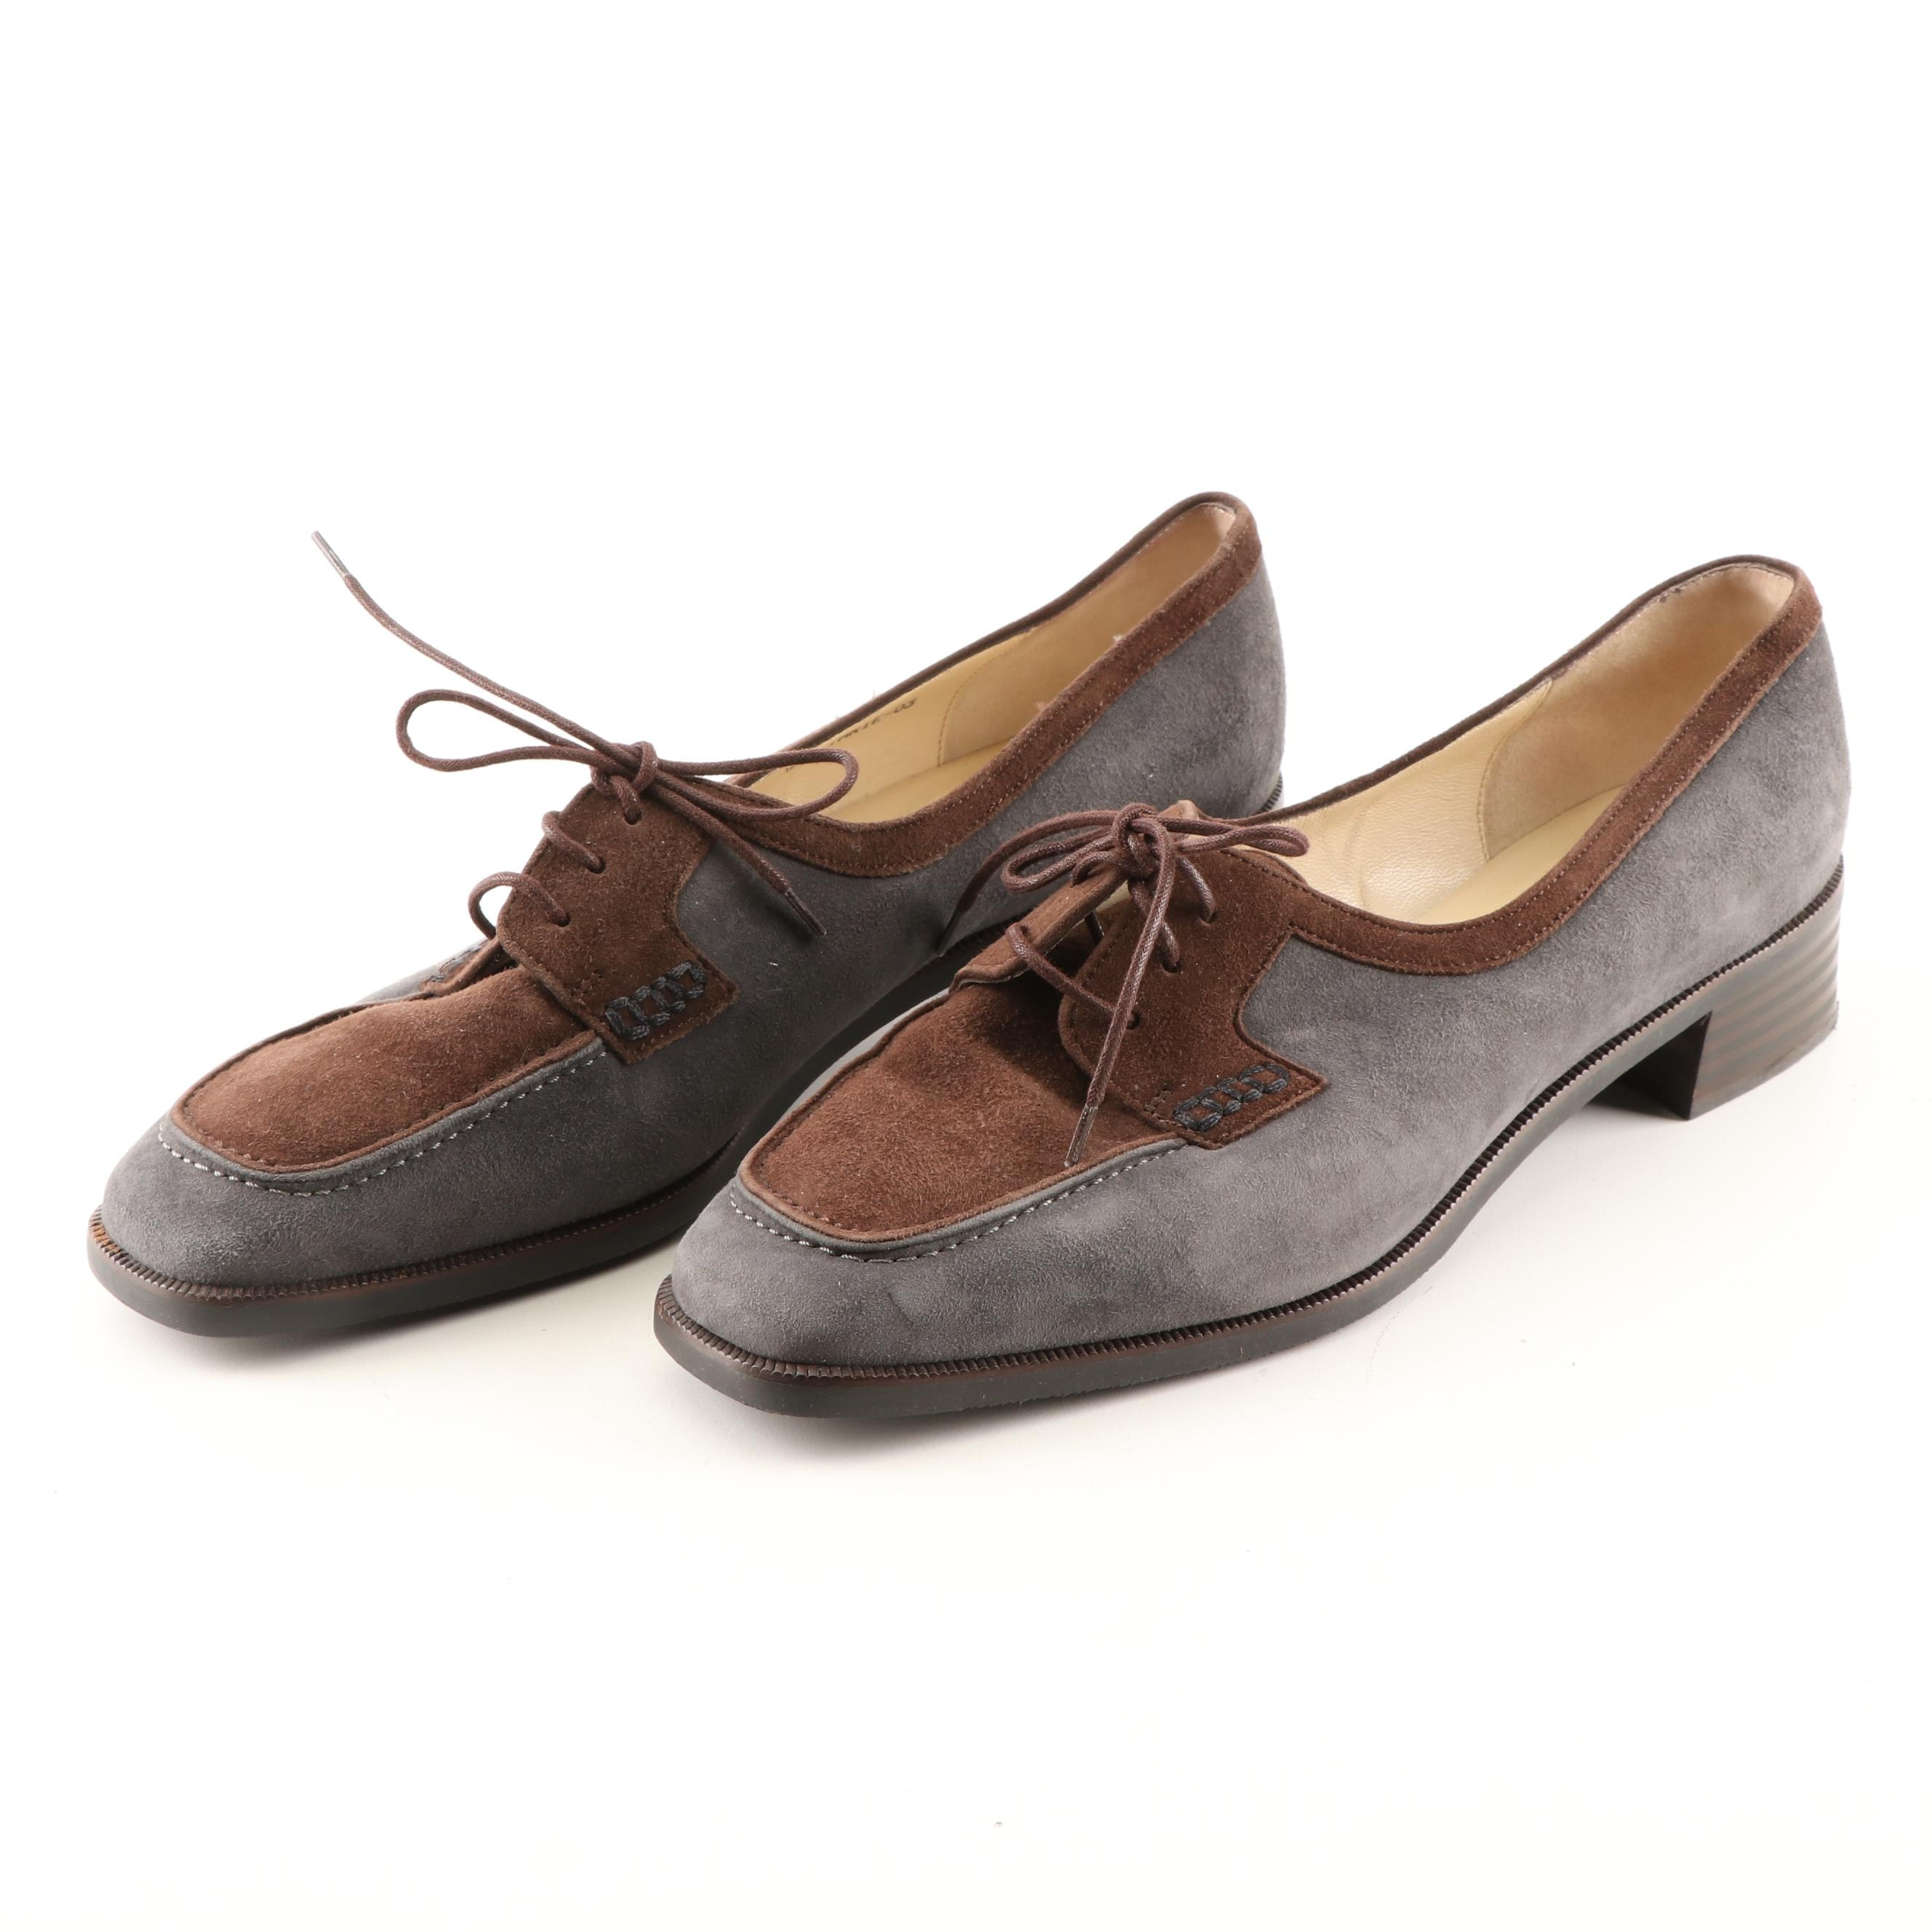 Bally Slate and Brown Suede Oxfords